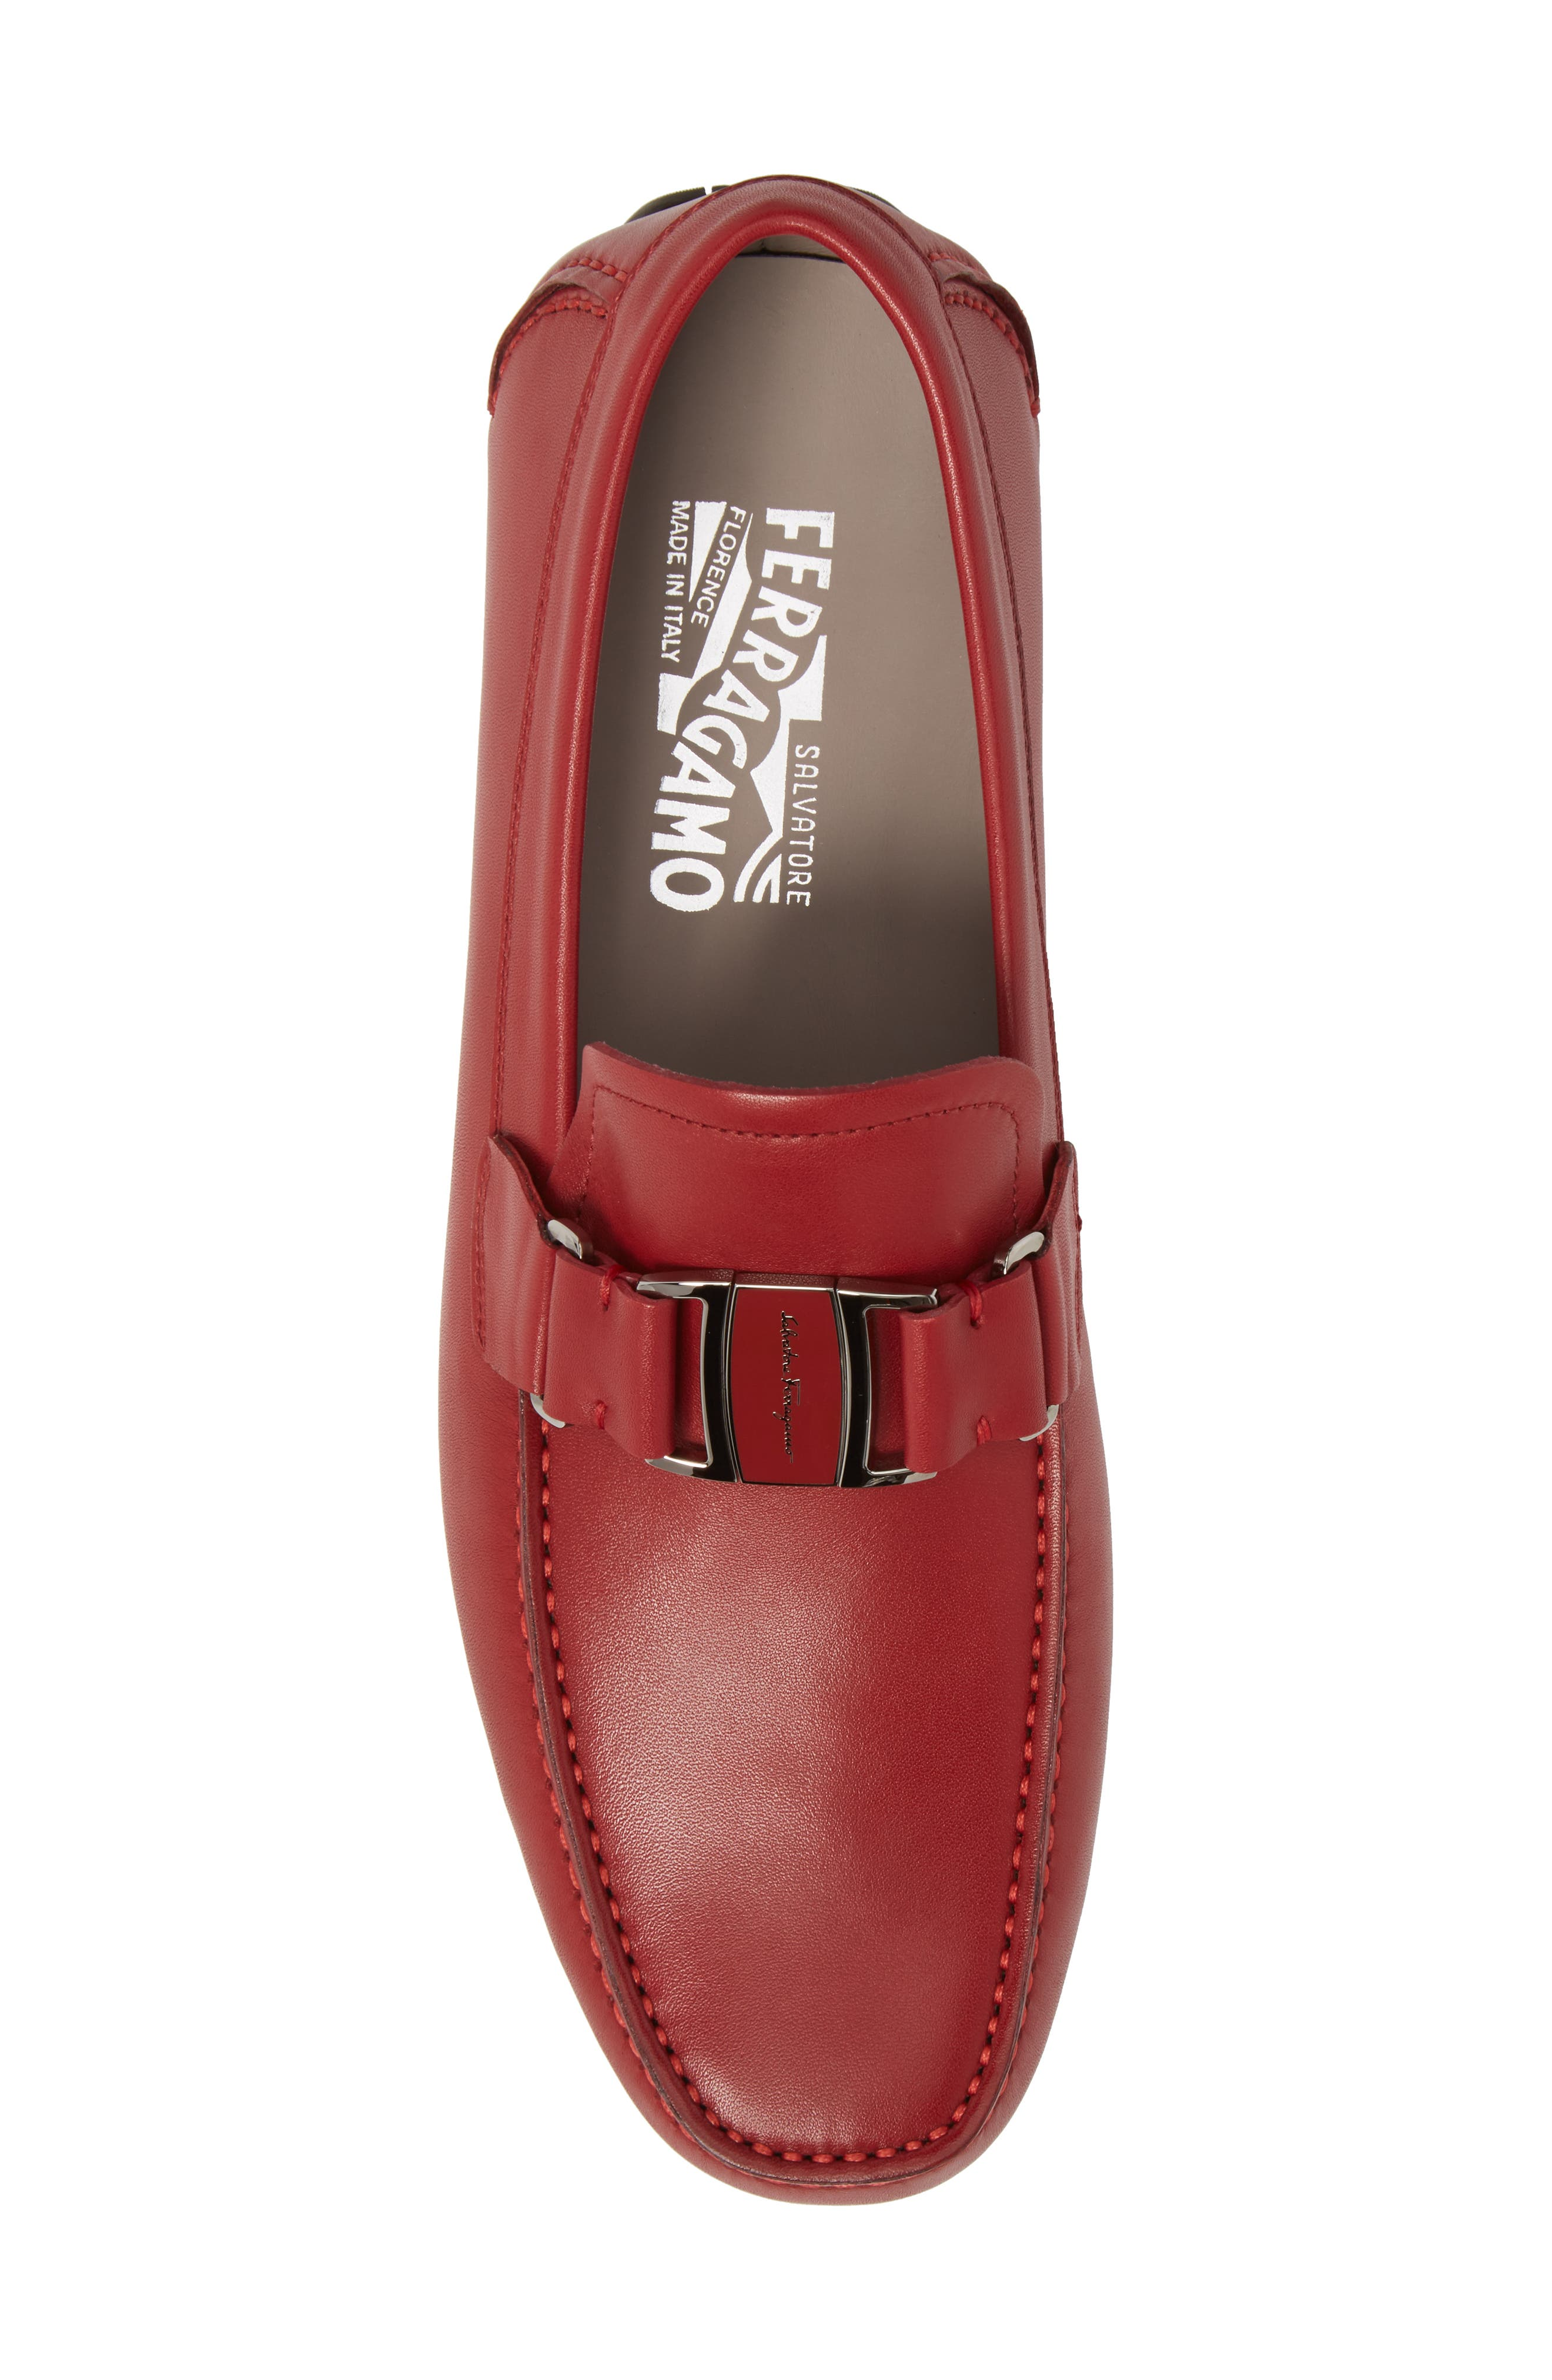 Sardegna Driving Shoe,                             Alternate thumbnail 5, color,                             Red Leather